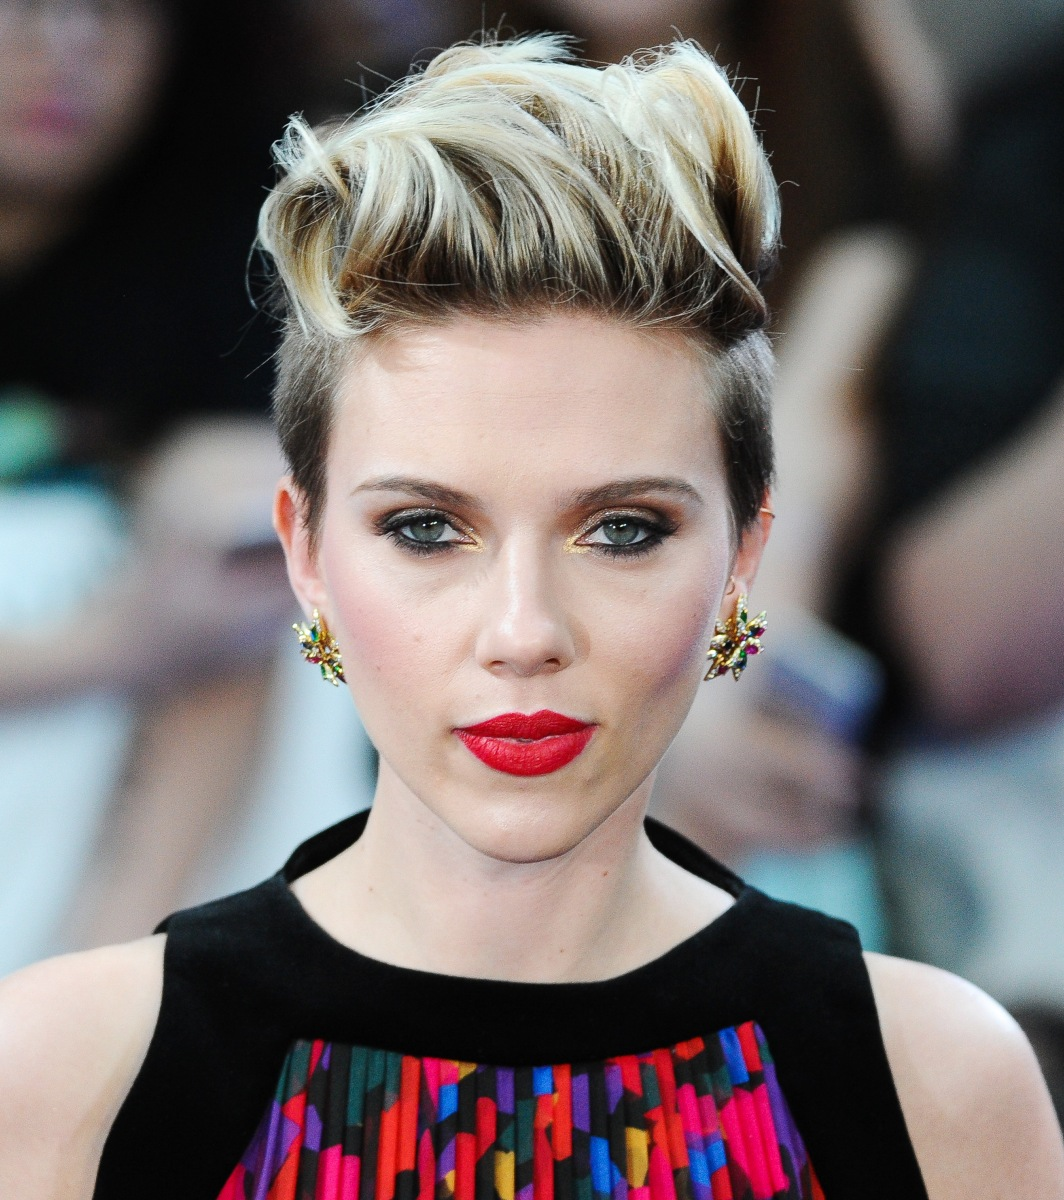 Todays Hair Styles : Short hairstyles inspired by celebrity dos - TODAY.com